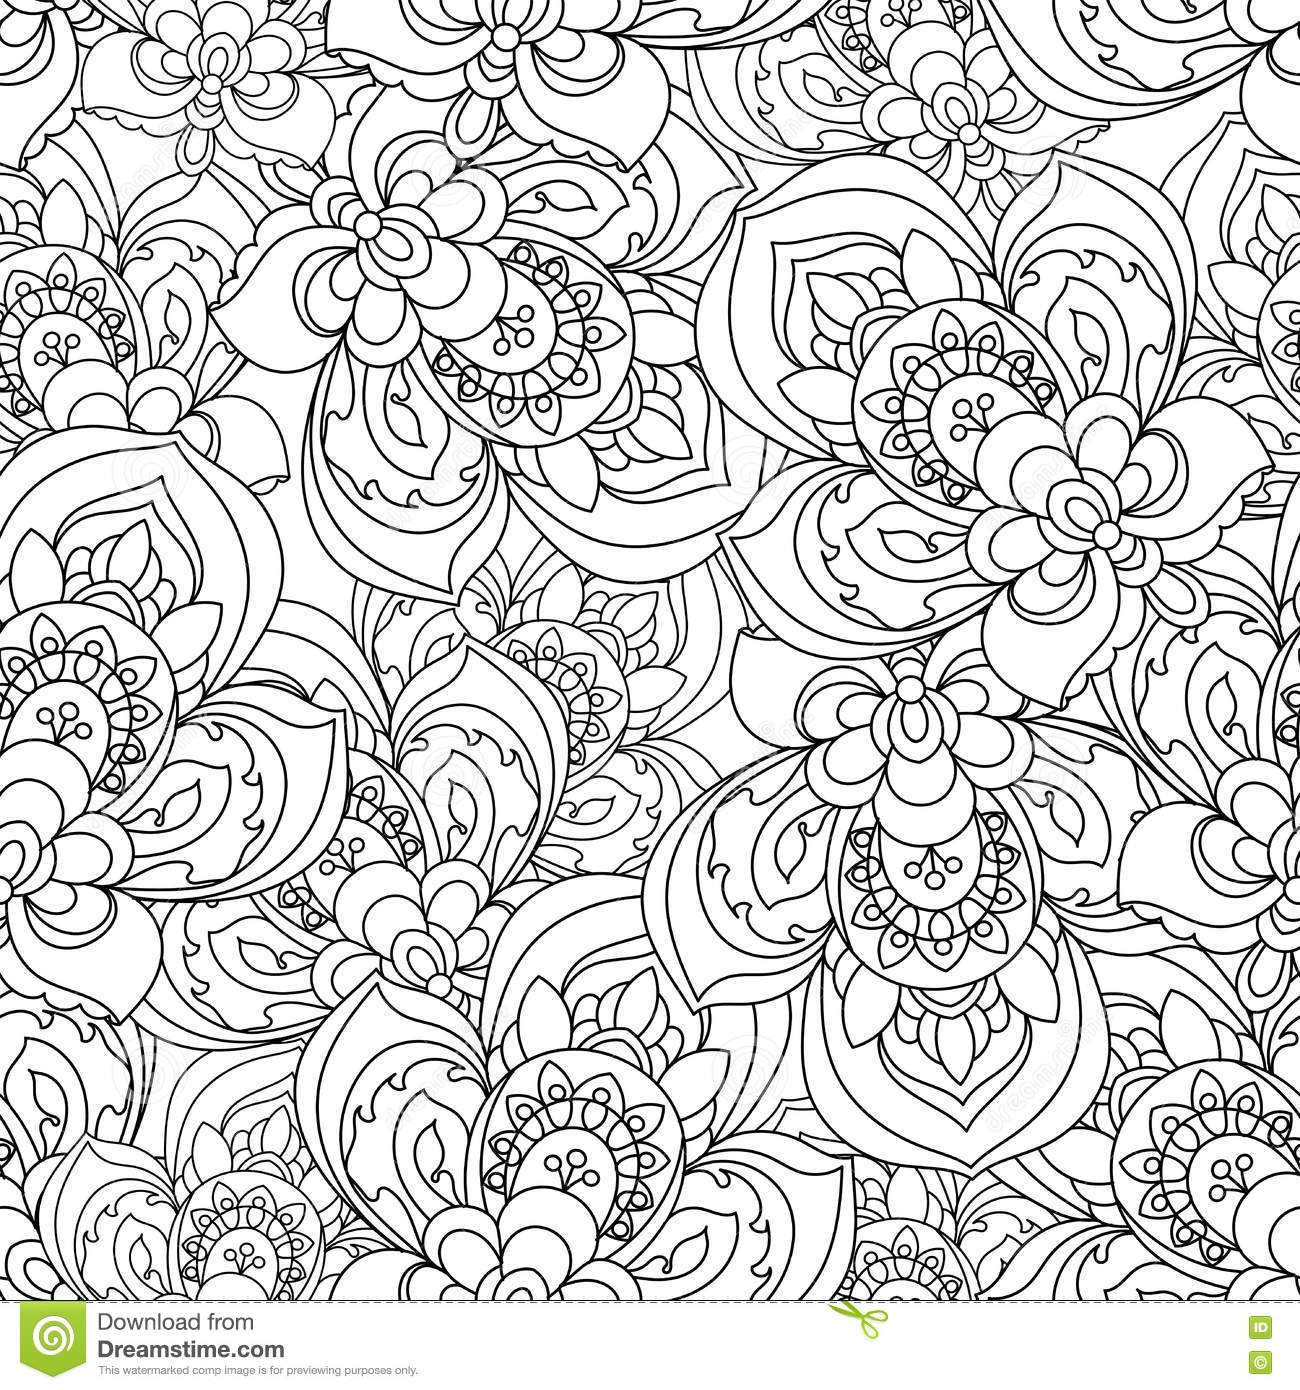 Download Vector Seamless Monochrome Ornate Pattern For Coloring Book Hand Drawn Mandala Texture Vintage